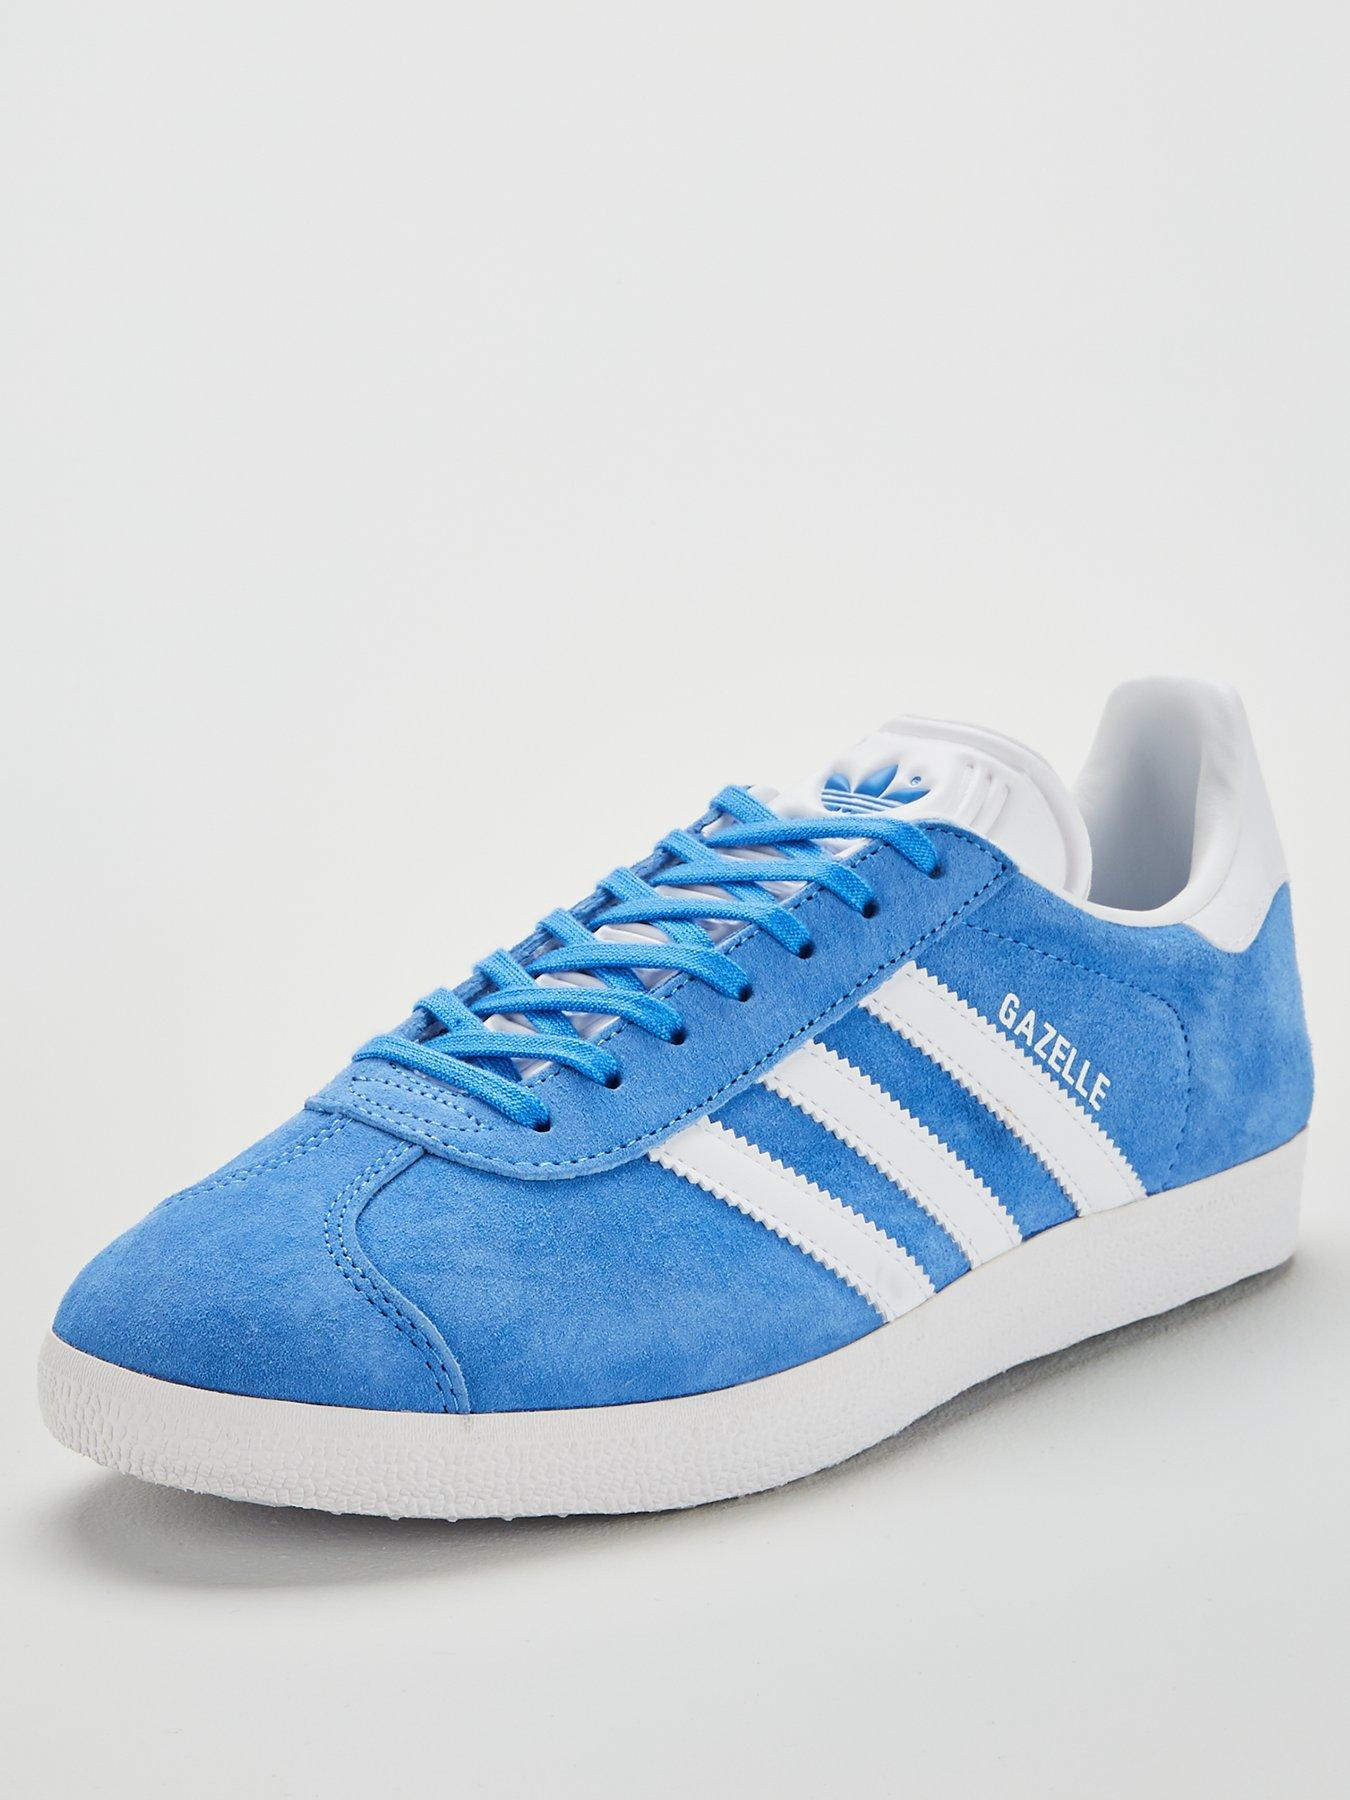 adidas Mens Sports Shoes | Very.co.uk